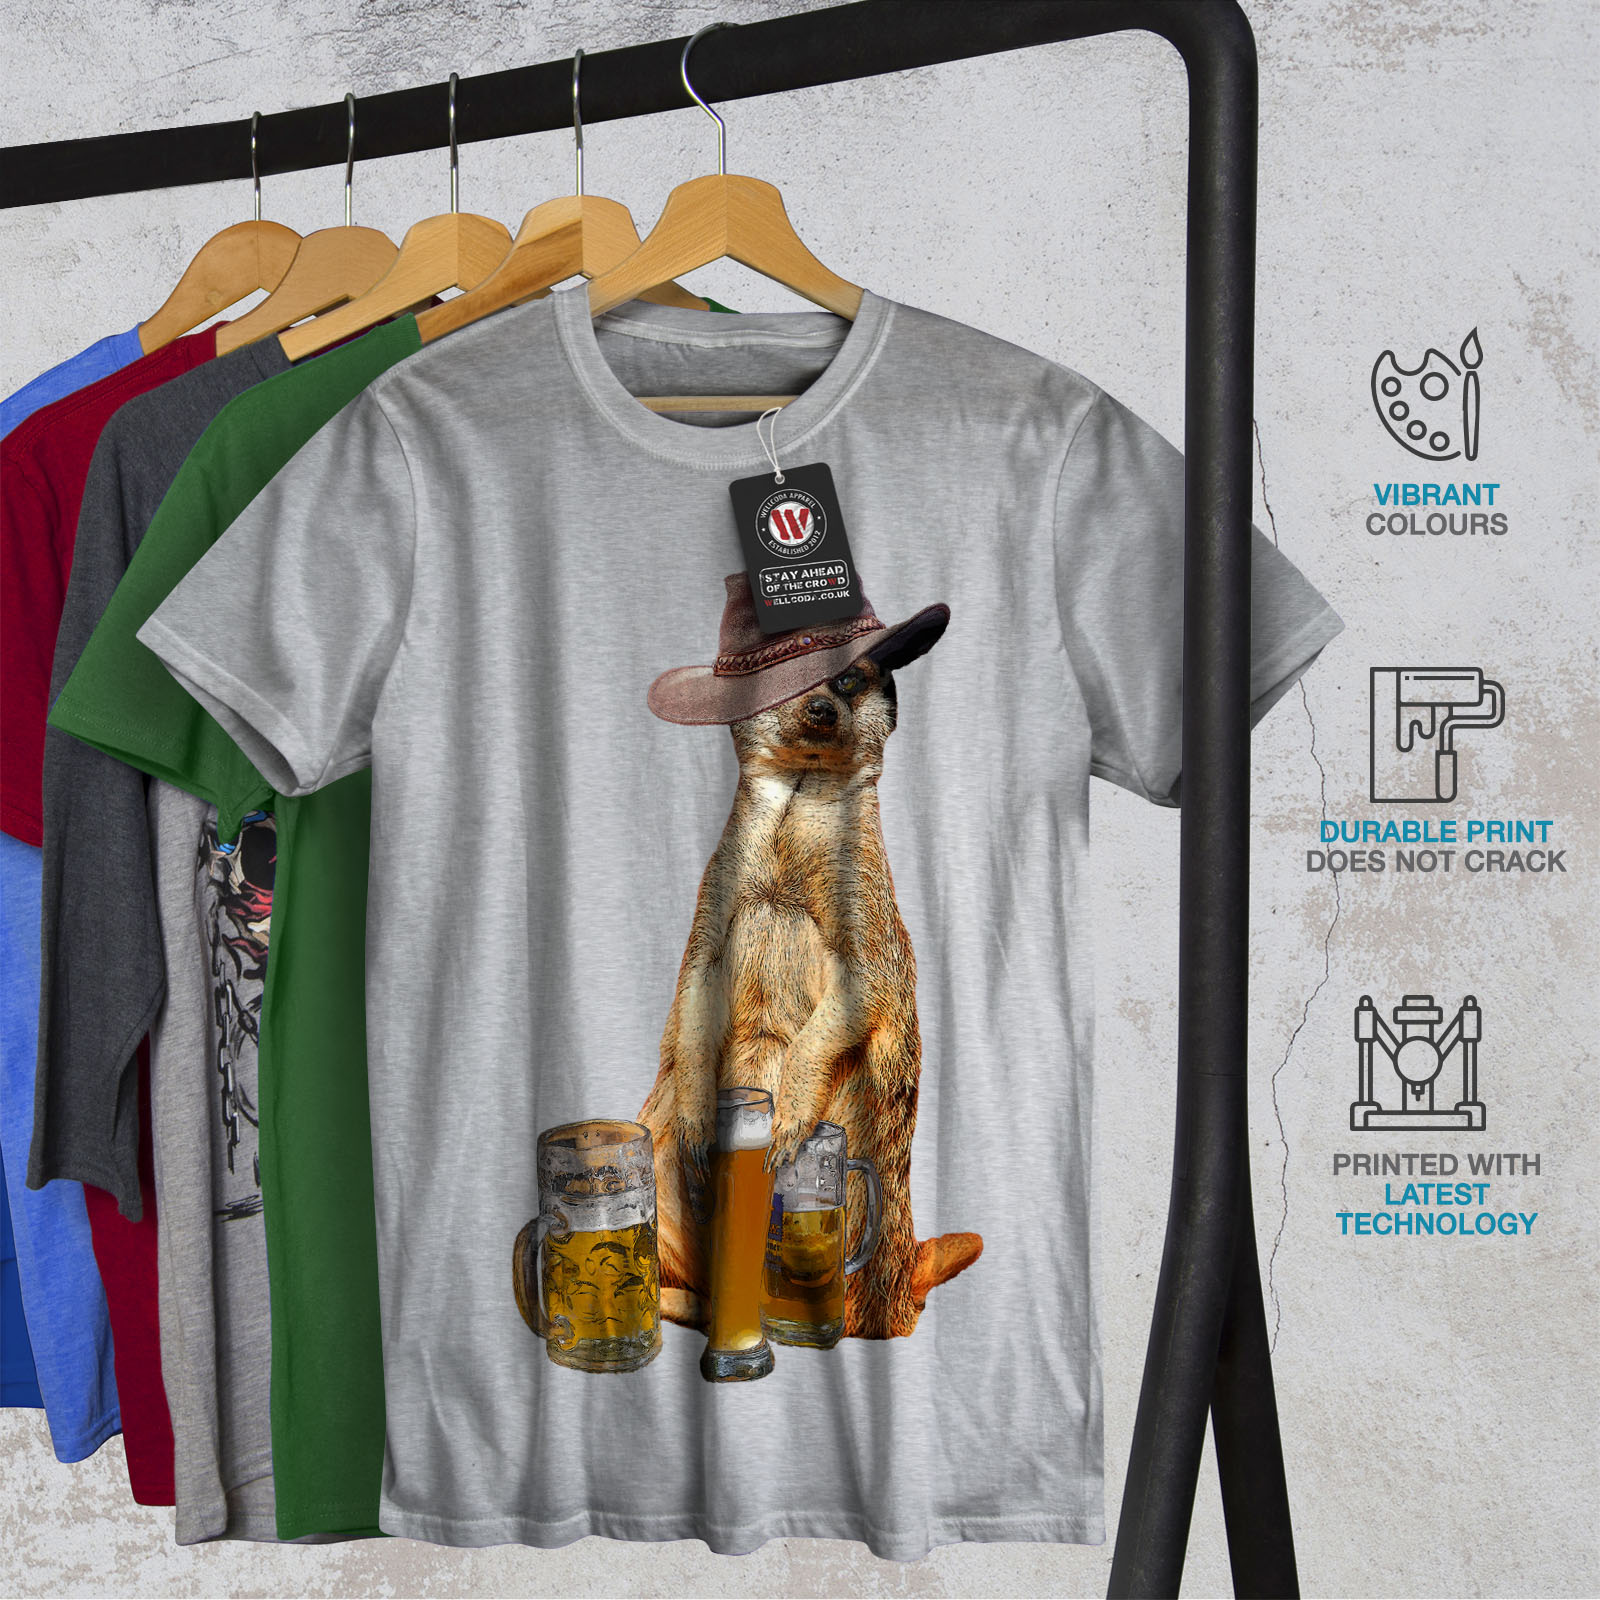 Wellcoda-Drunk-Animal-Beer-Mens-T-shirt-Funny-Graphic-Design-Printed-Tee thumbnail 18